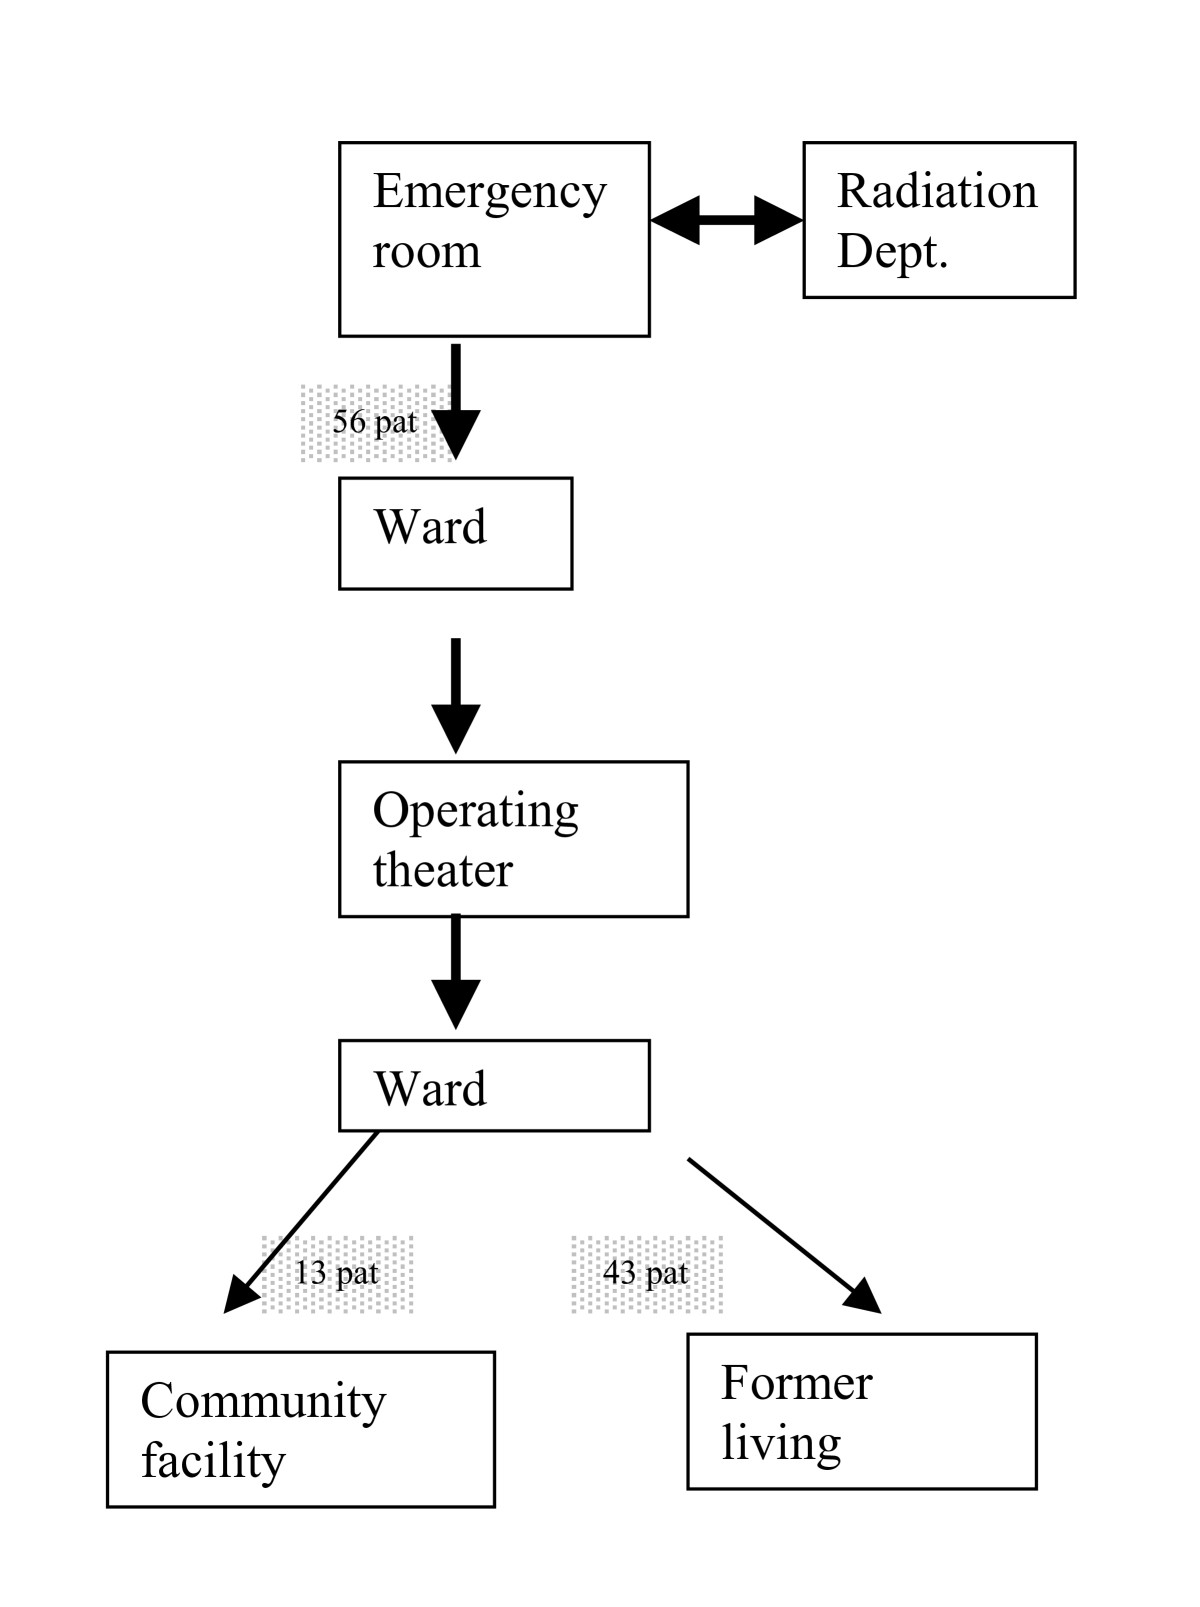 http://static-content.springer.com/image/art%3A10.1186%2F1749-799X-1-3/MediaObjects/13018_2006_Article_3_Fig2_HTML.jpg